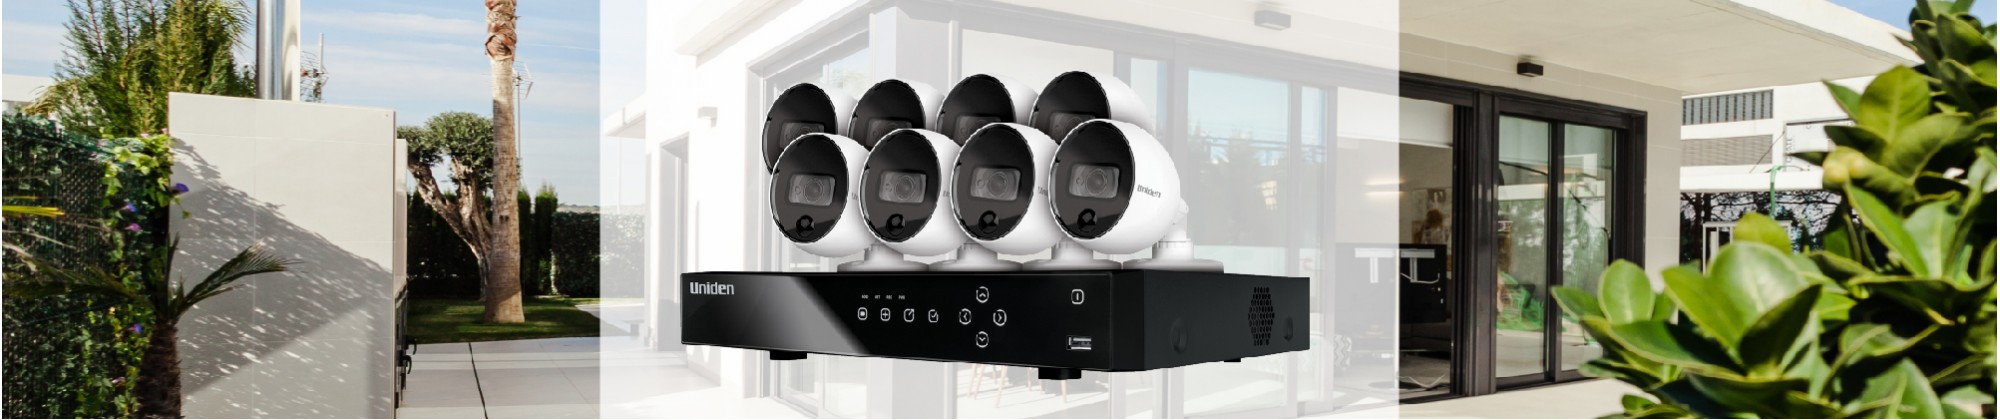 DVR Security